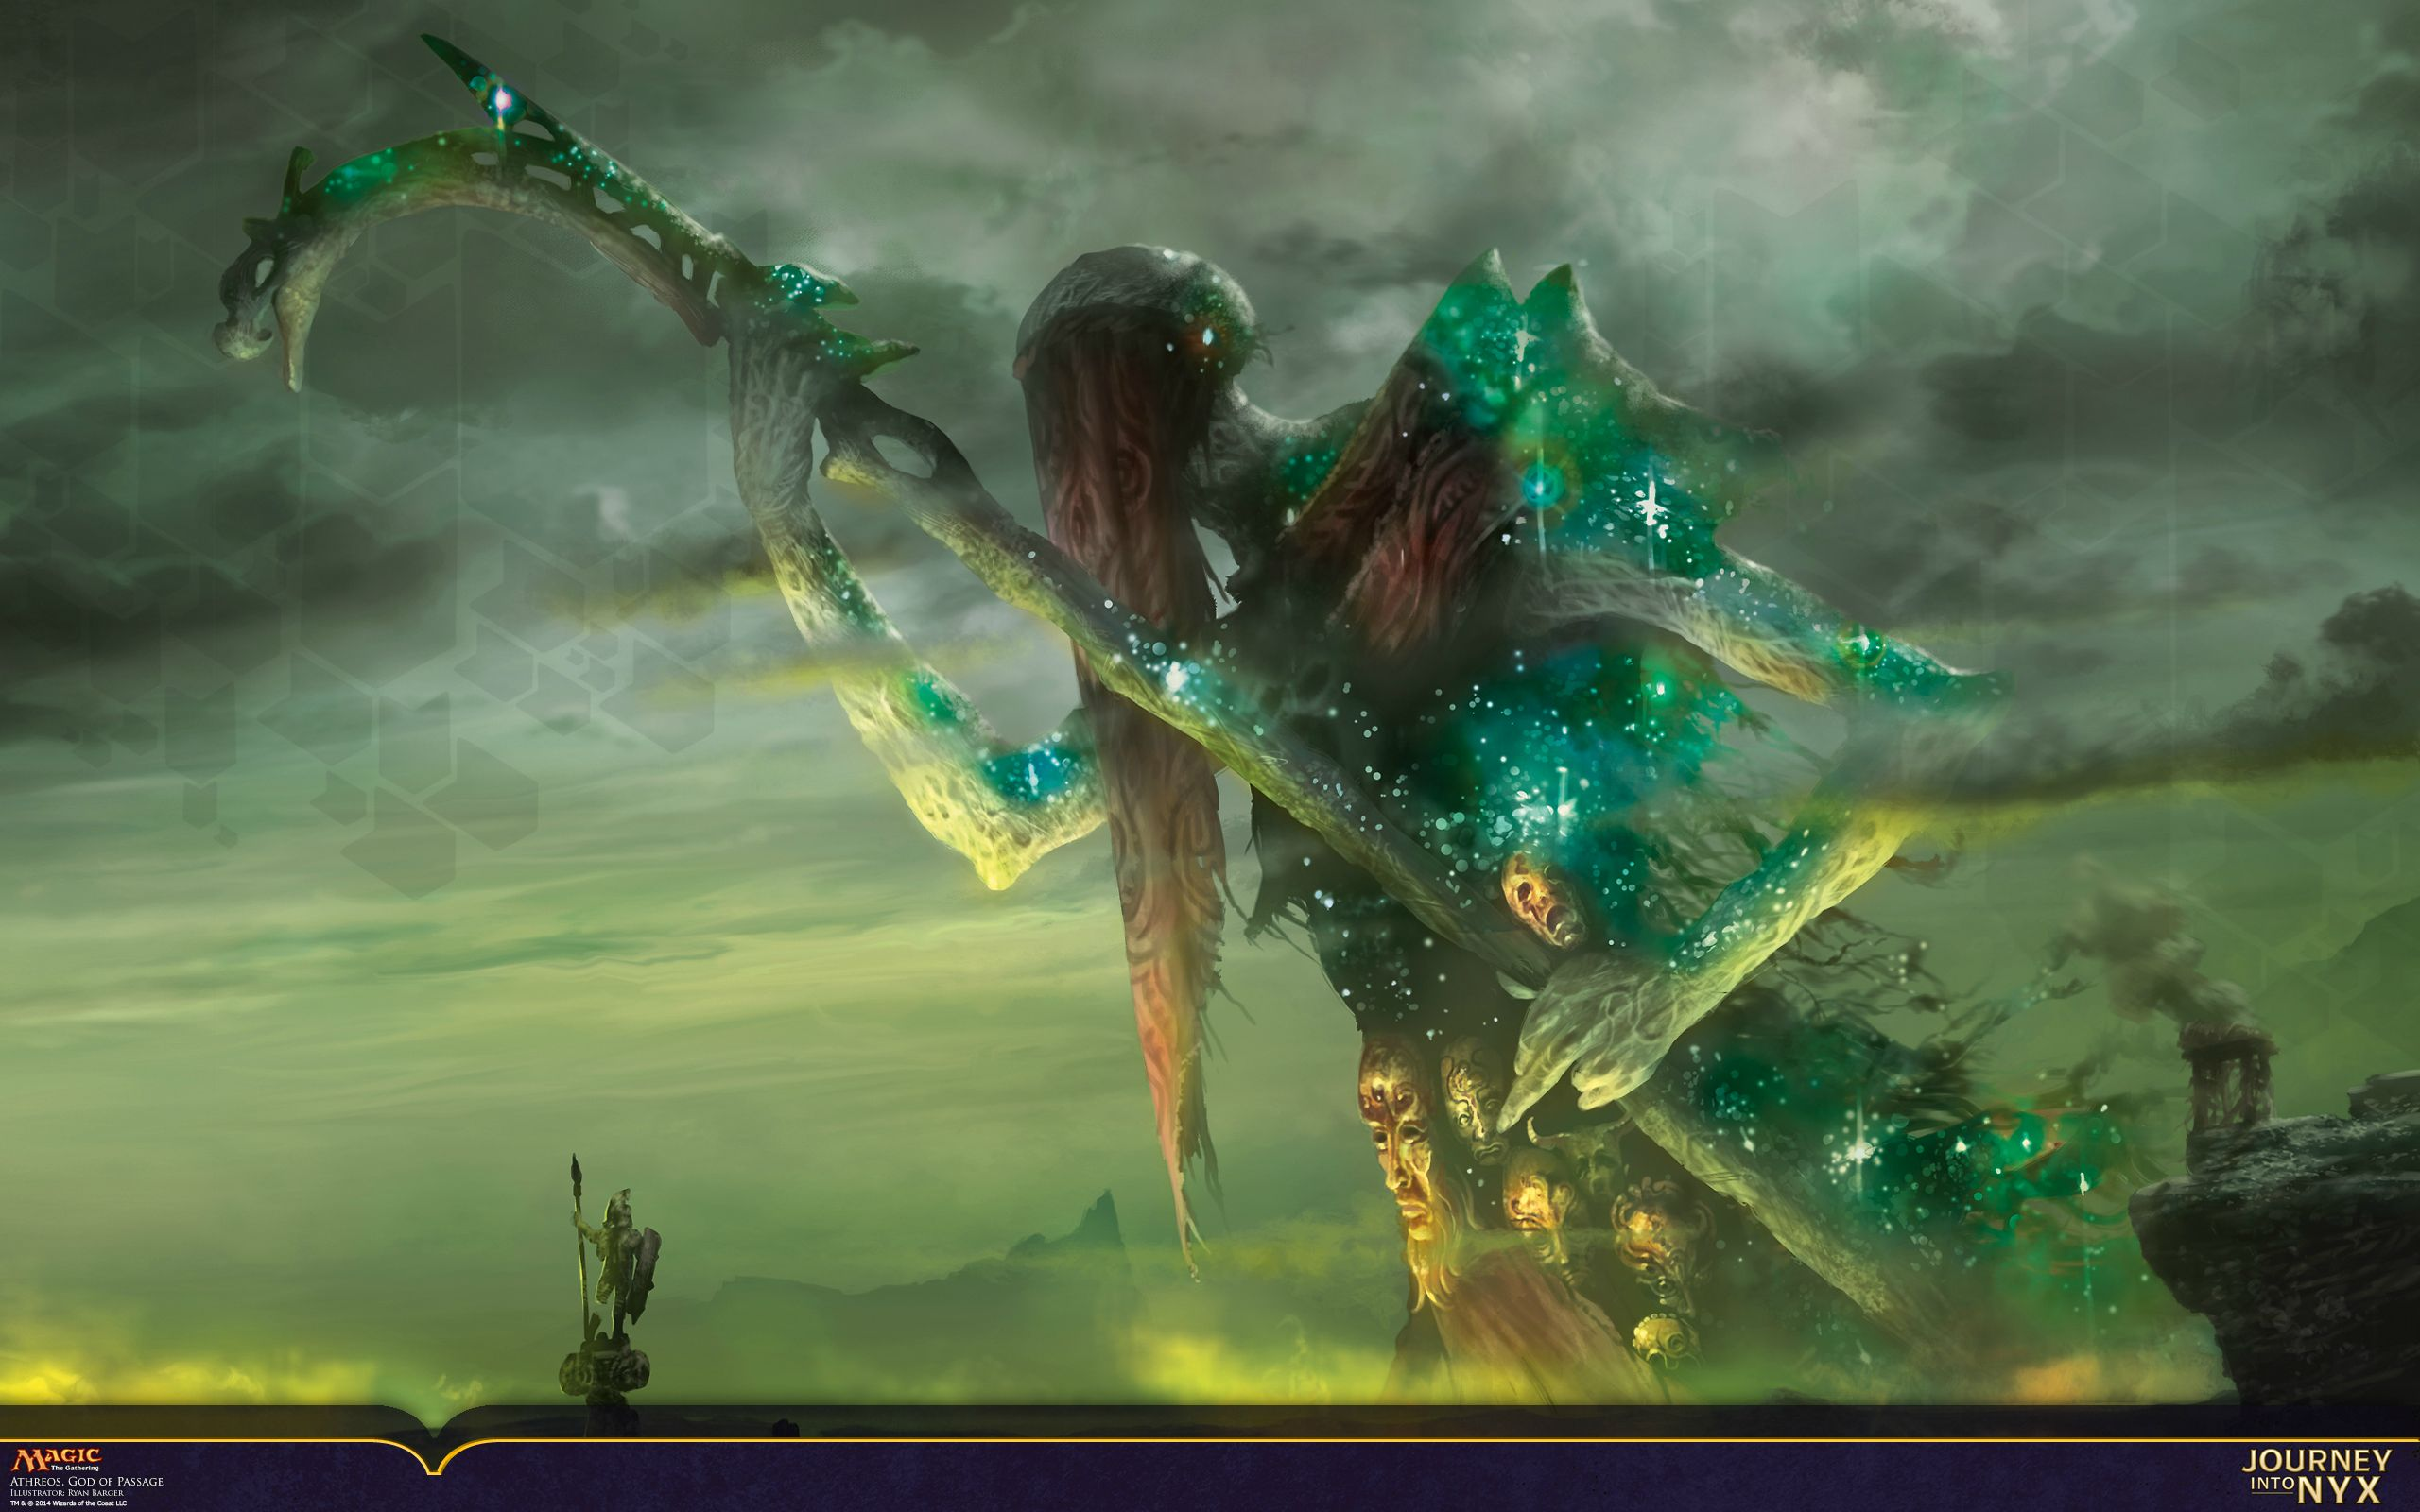 Mtg Wallpaper Magic The Gathering Hd Wallpapers Pictures Images